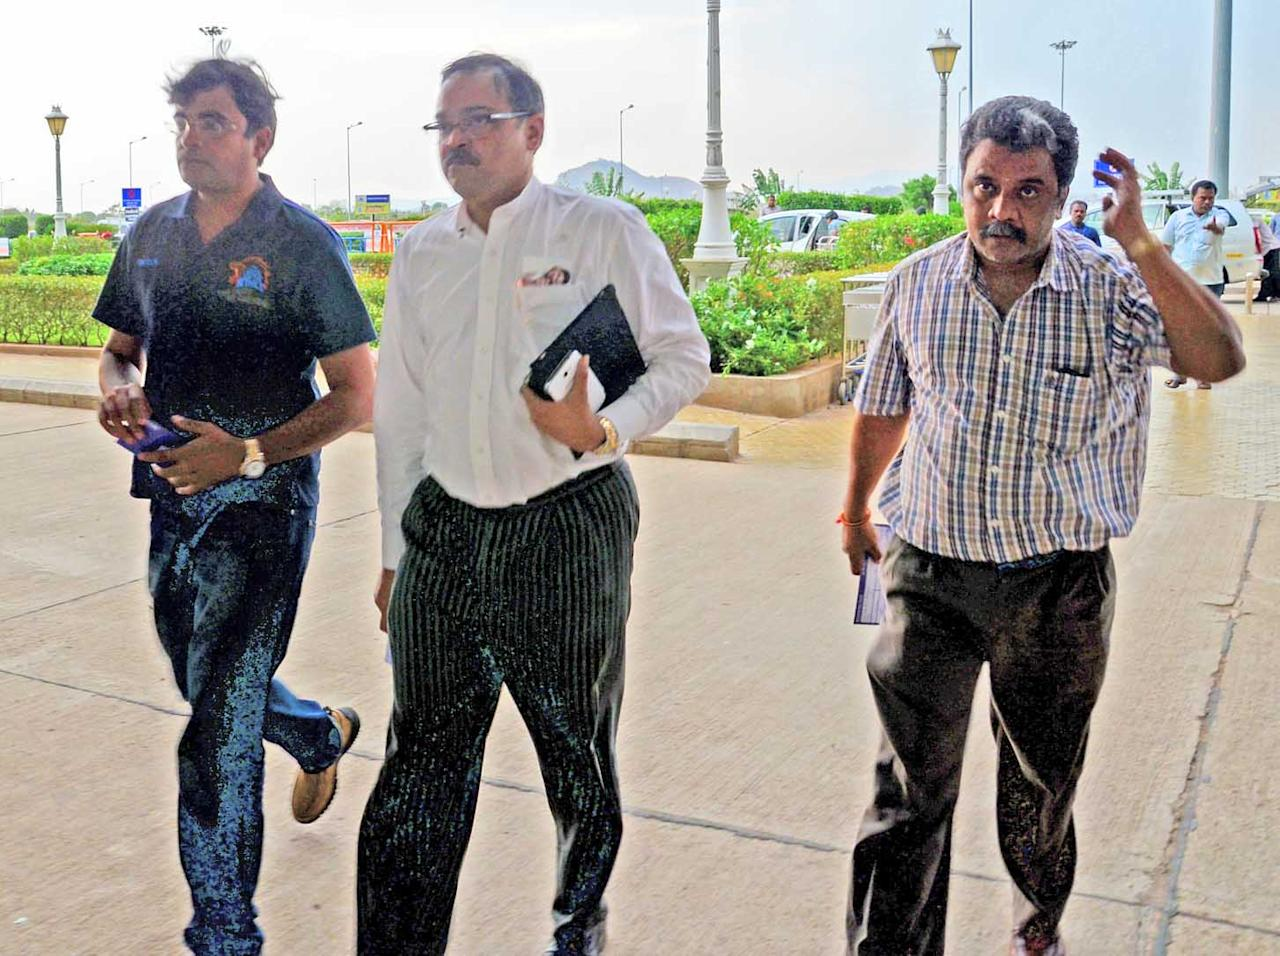 Gurunath Meiyappan, the son-in-law of BCCI chief N Srinivasan, at Madurai Airport, on May 24, 2013. (Photo: IANS)